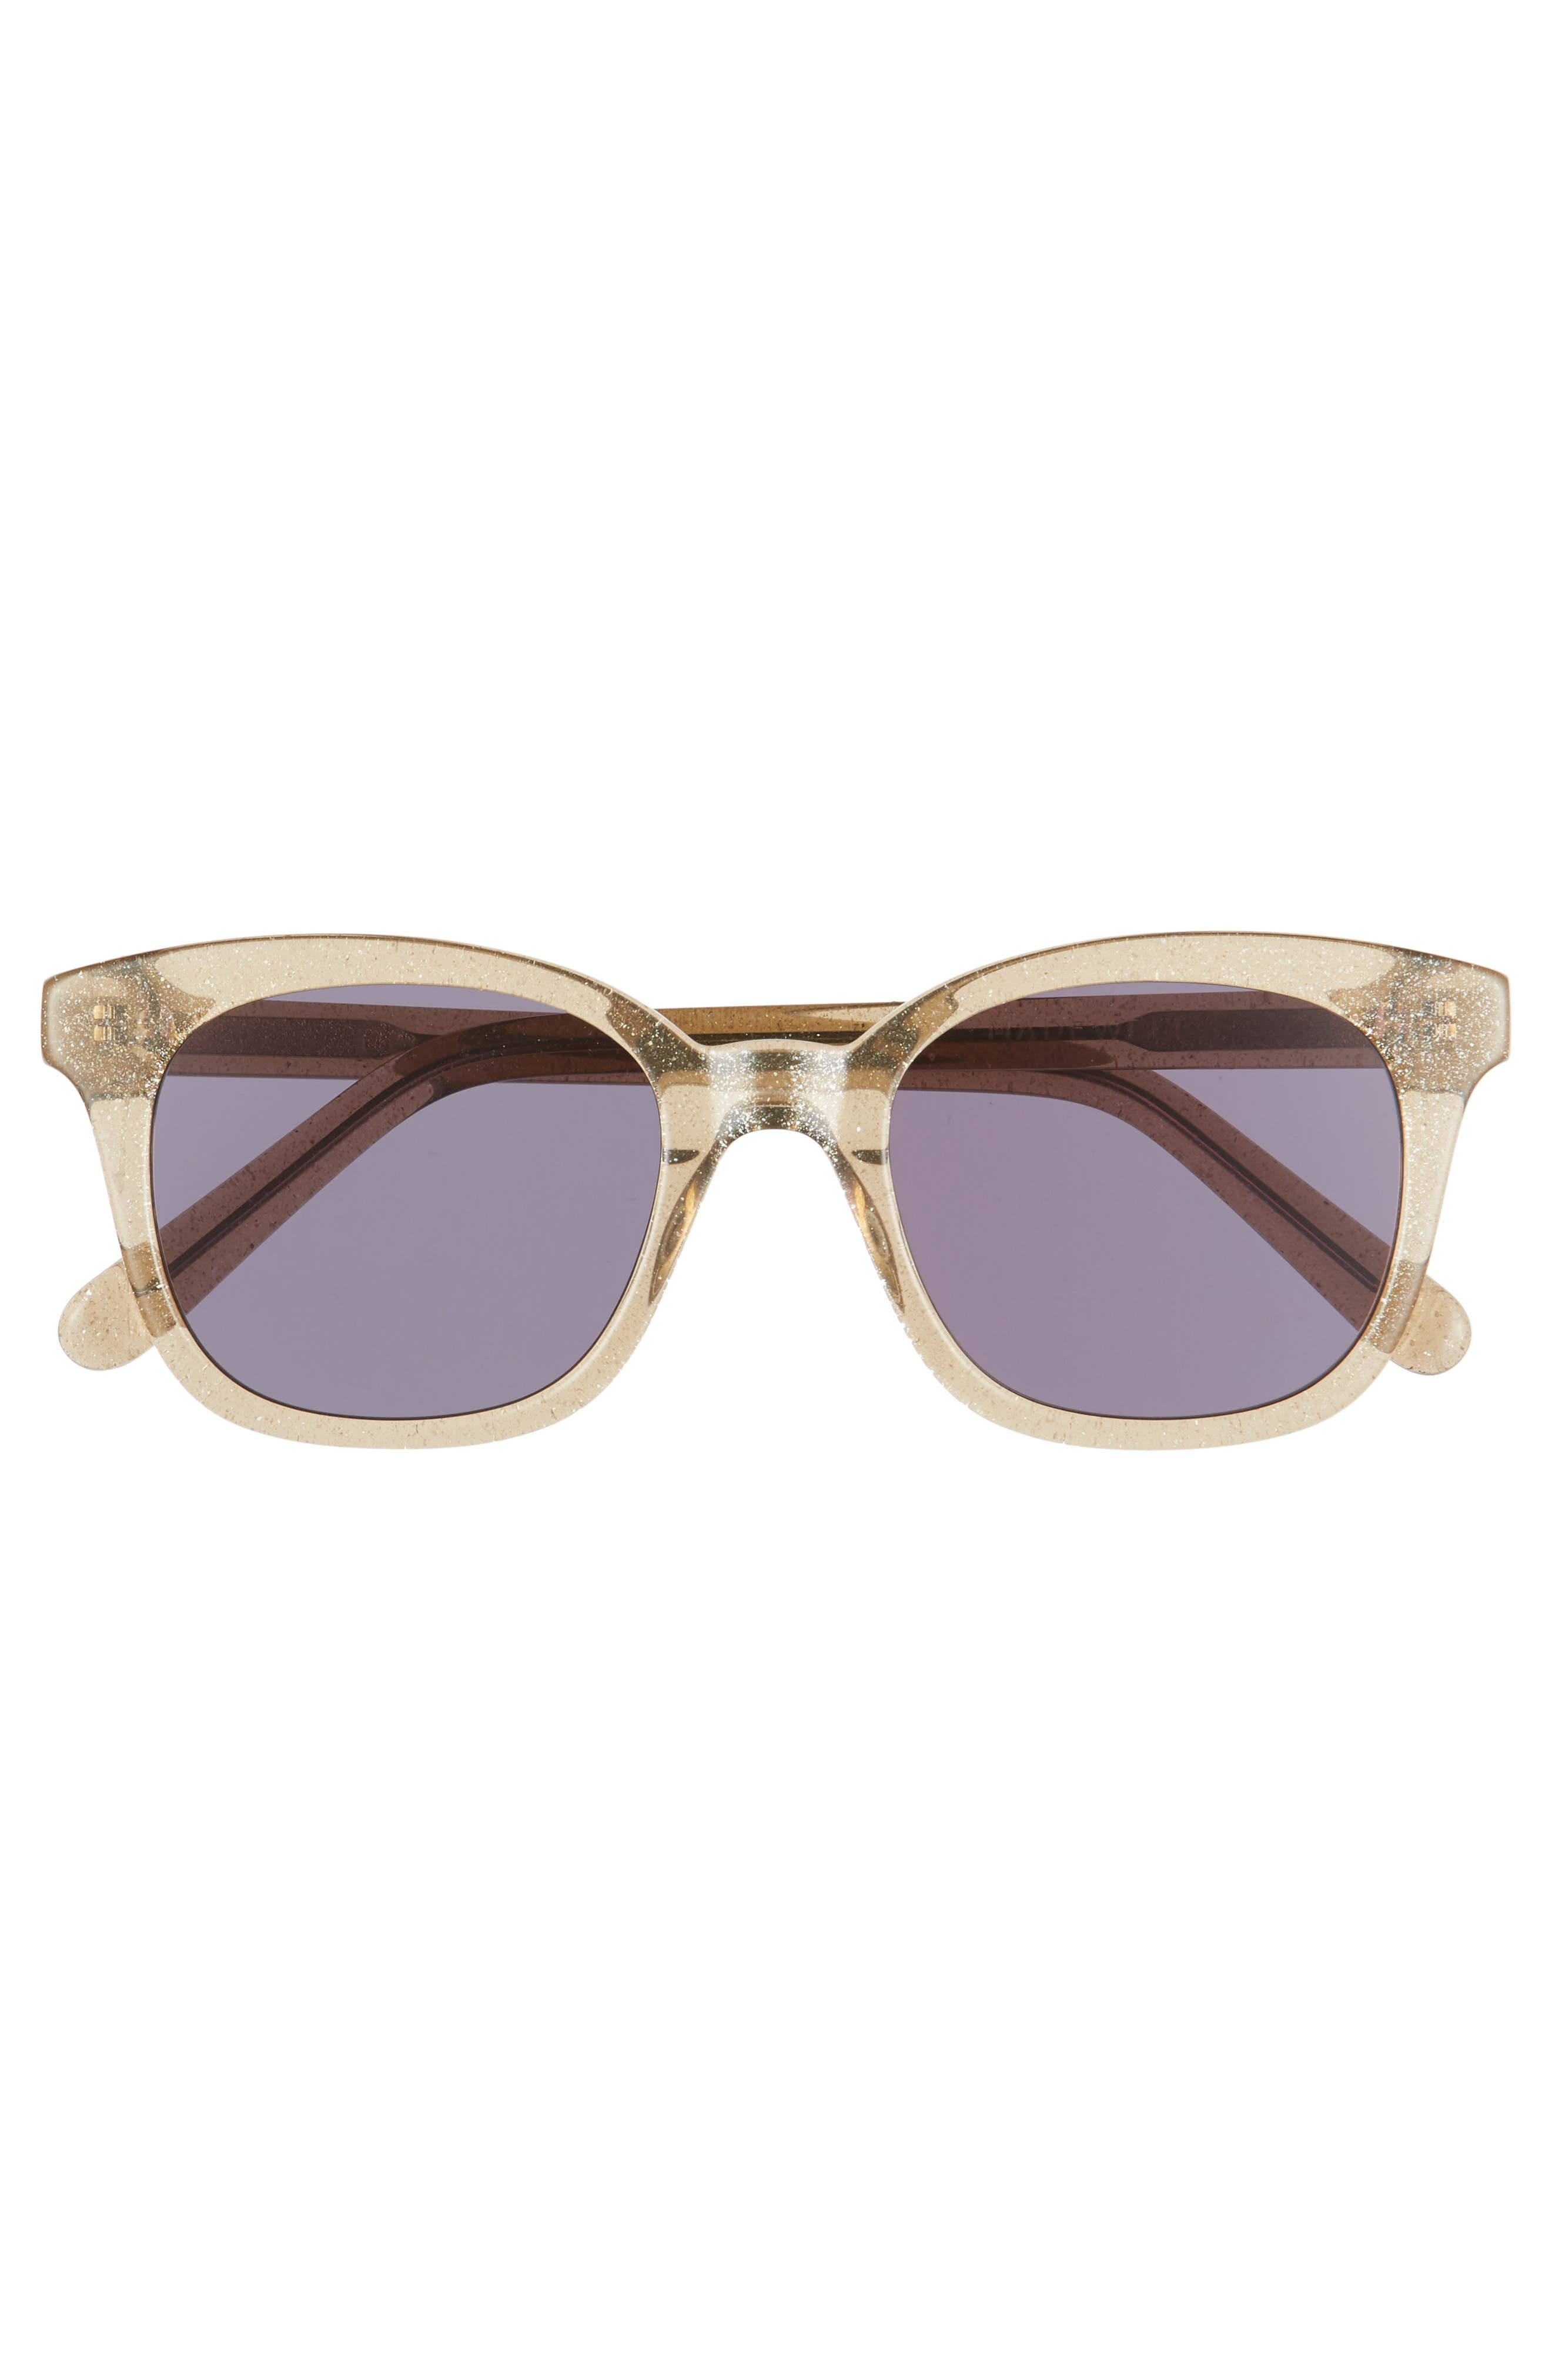 MADEWELL,                             Venice 49mm Flat Frame Sunglasses,                             Alternate thumbnail 3, color,                             KRAFT BROWN/ BLACK